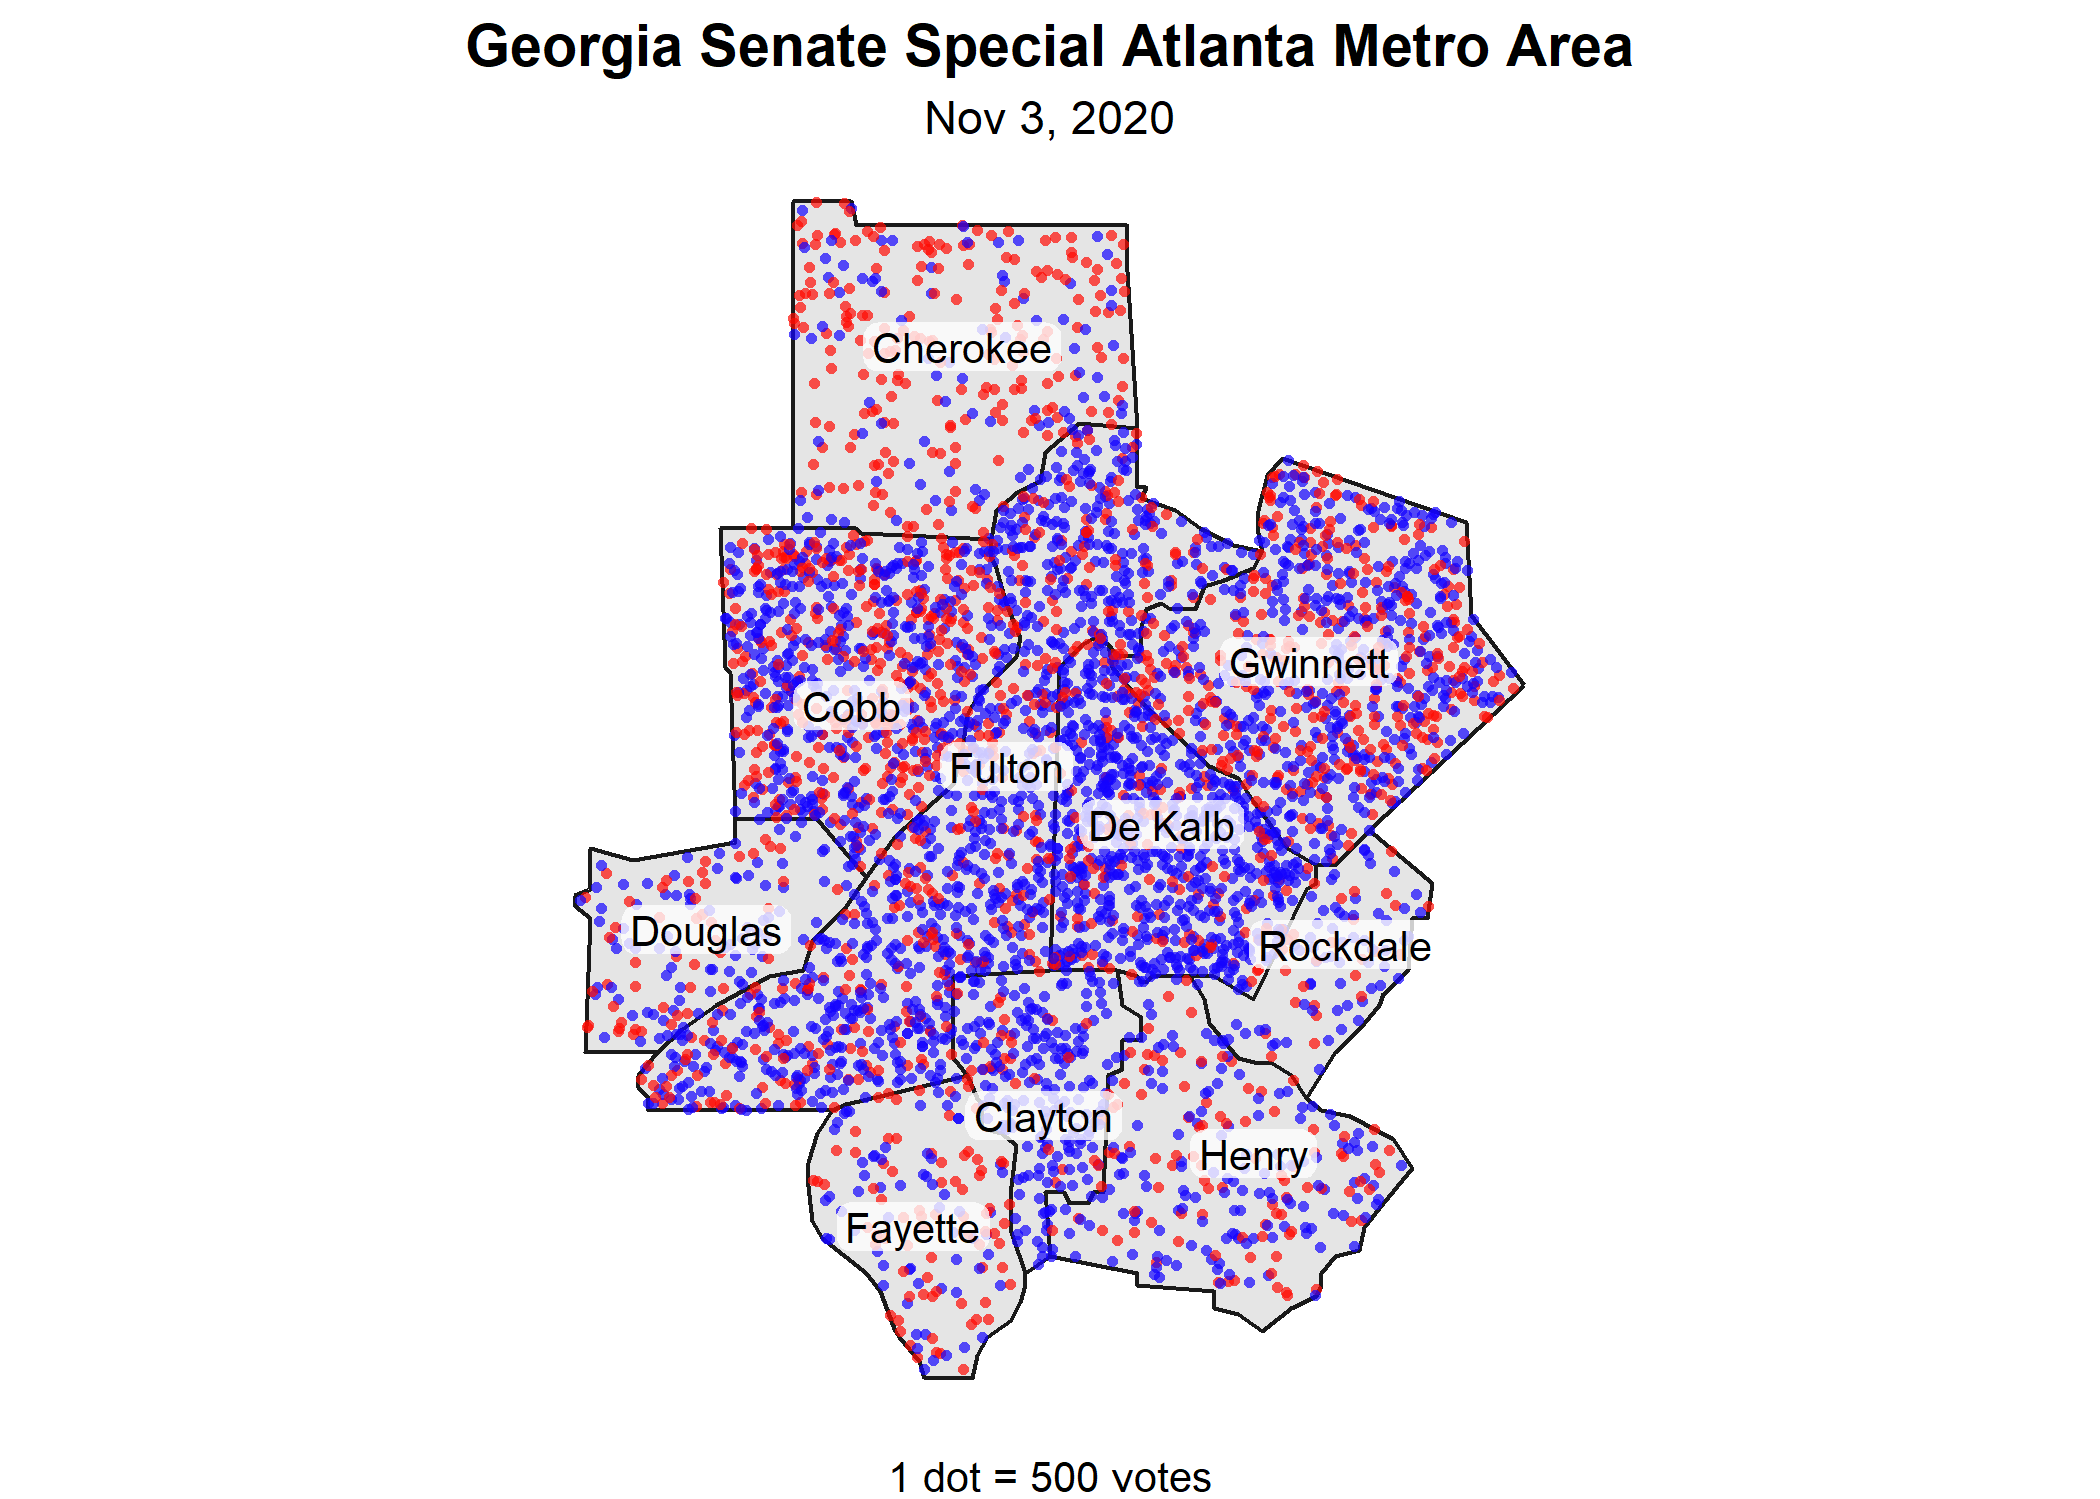 Georgia Senate Special Election 3 Nov 2020 — Republican and Democratic Votes in the Atlanta metro area. 1 dot = 500 votes